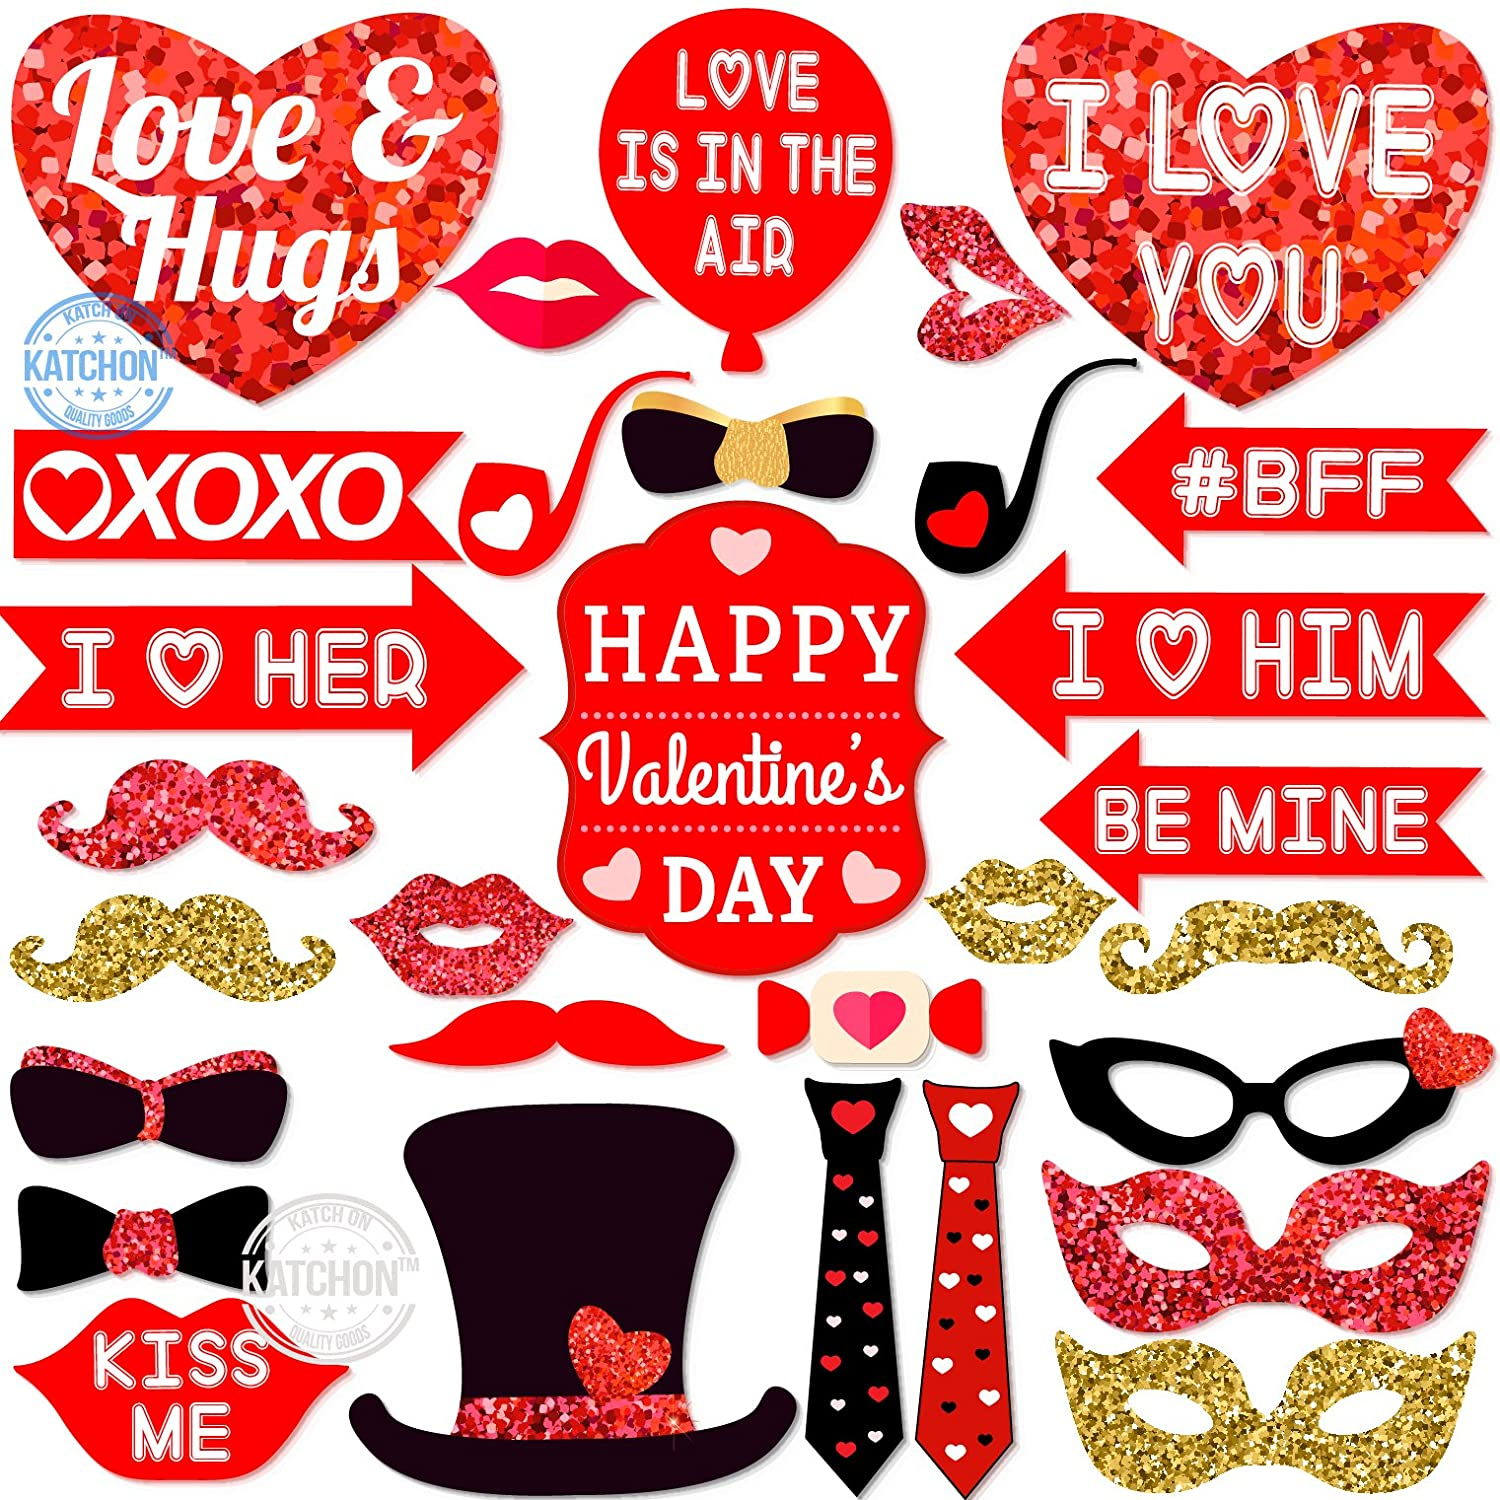 REAL RED And GOLD GLITTER Valentine Days Photo Booth Props